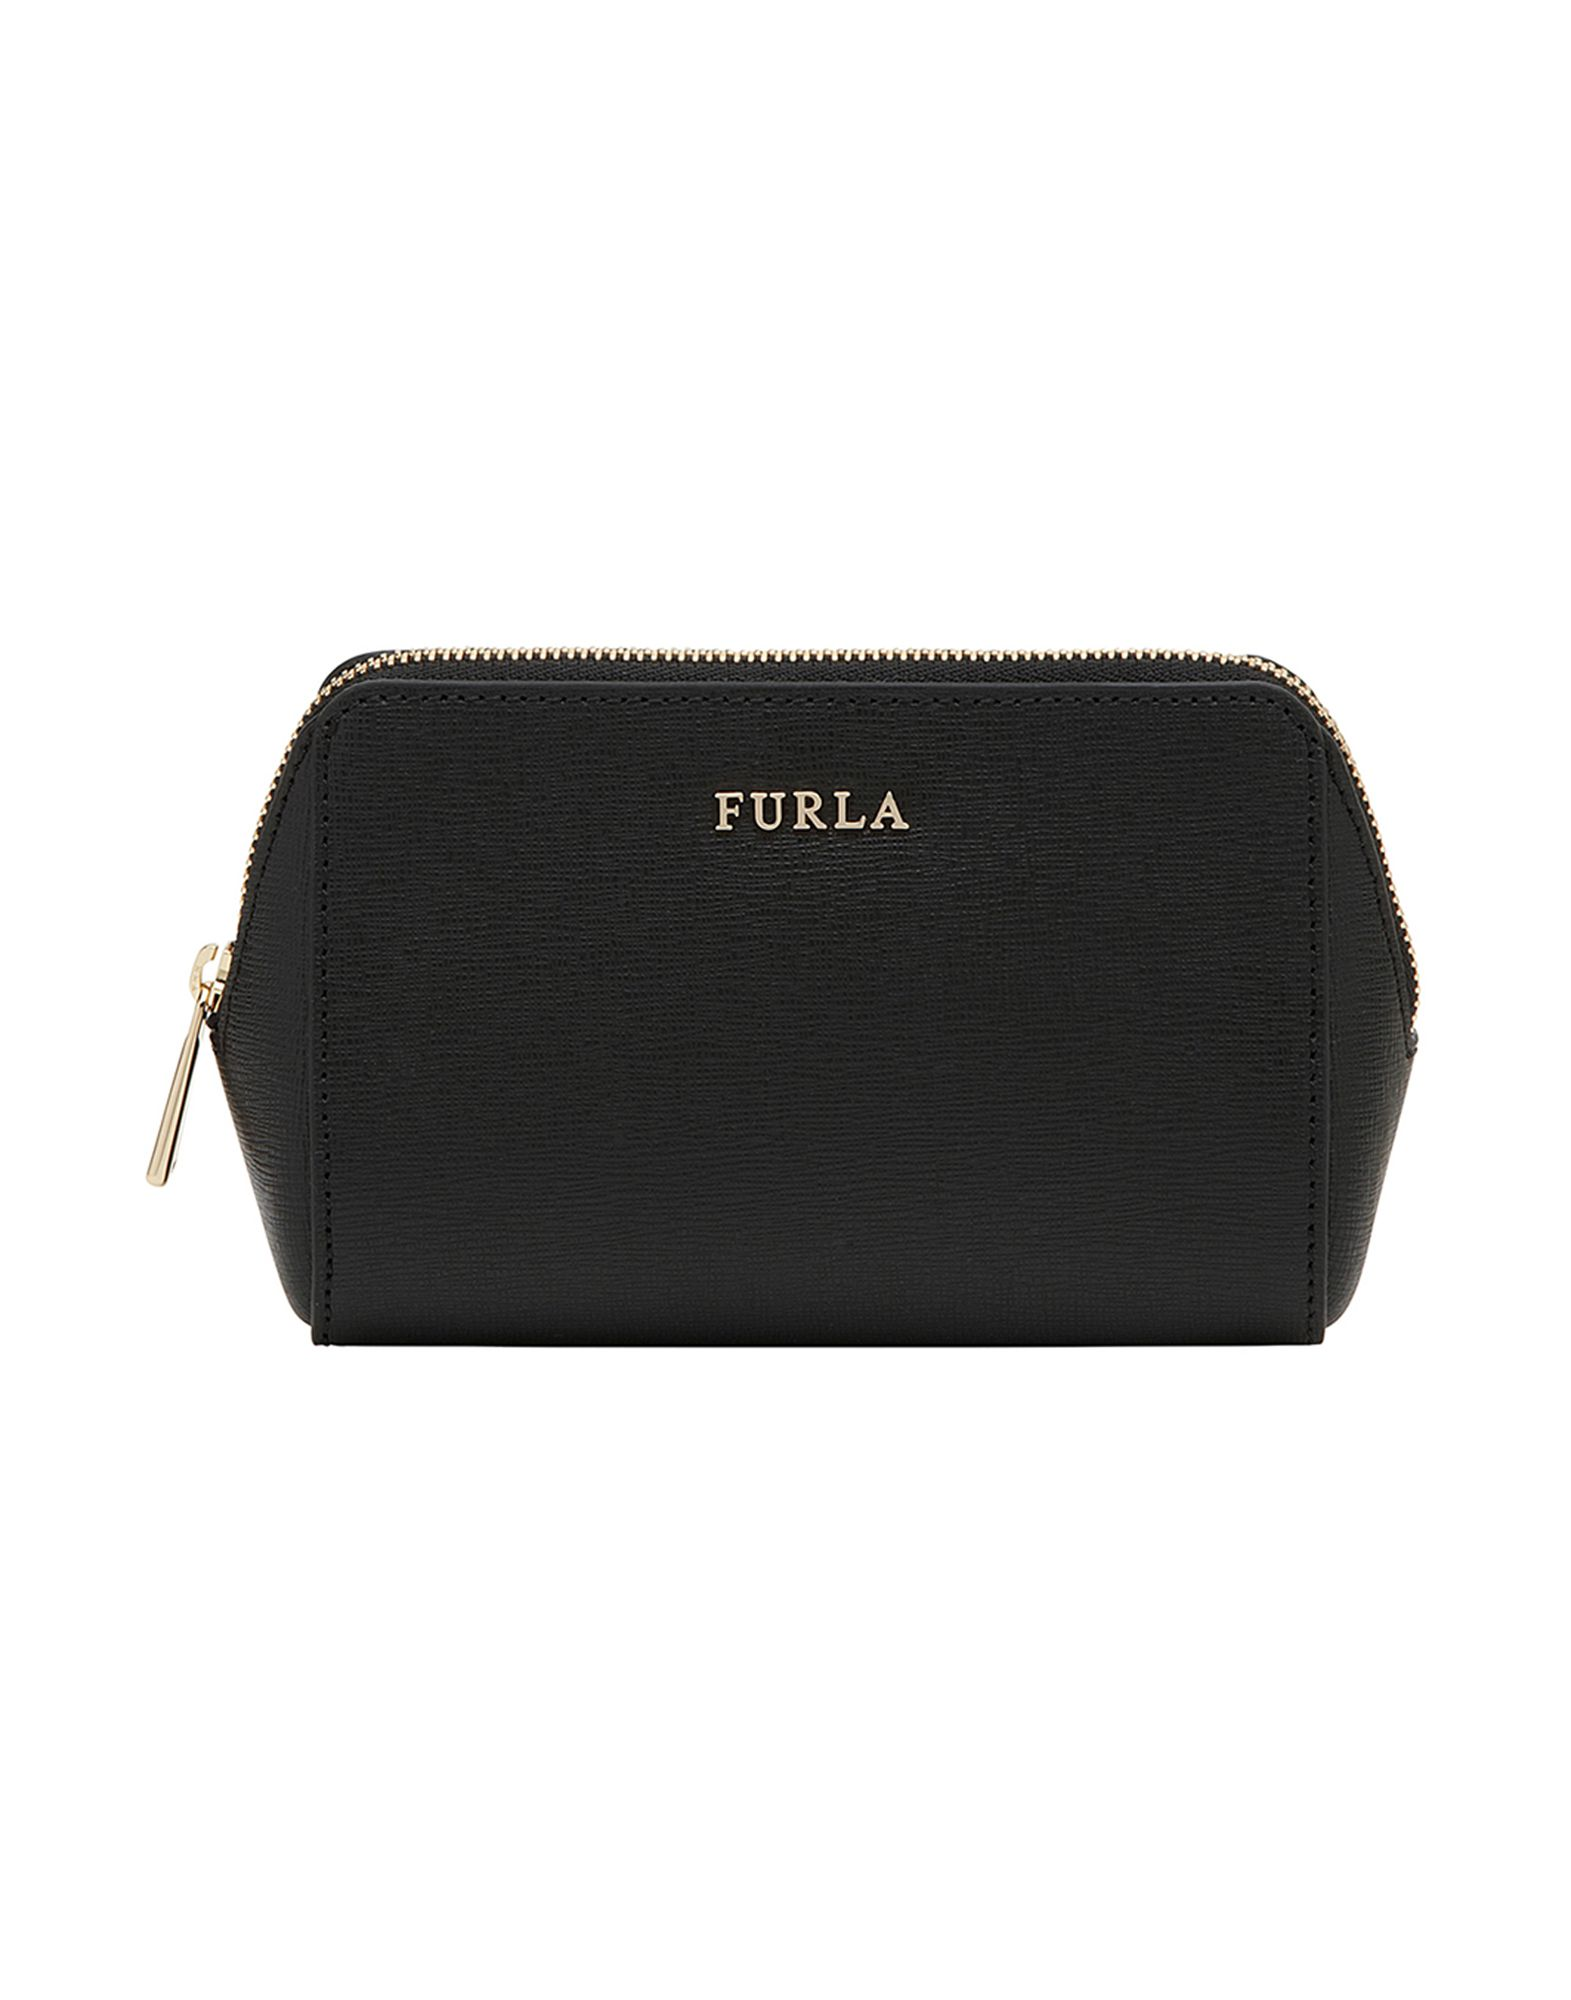 FURLA Beauty case beauty artisan classic black textured pattern aluminum makeup organizer train case